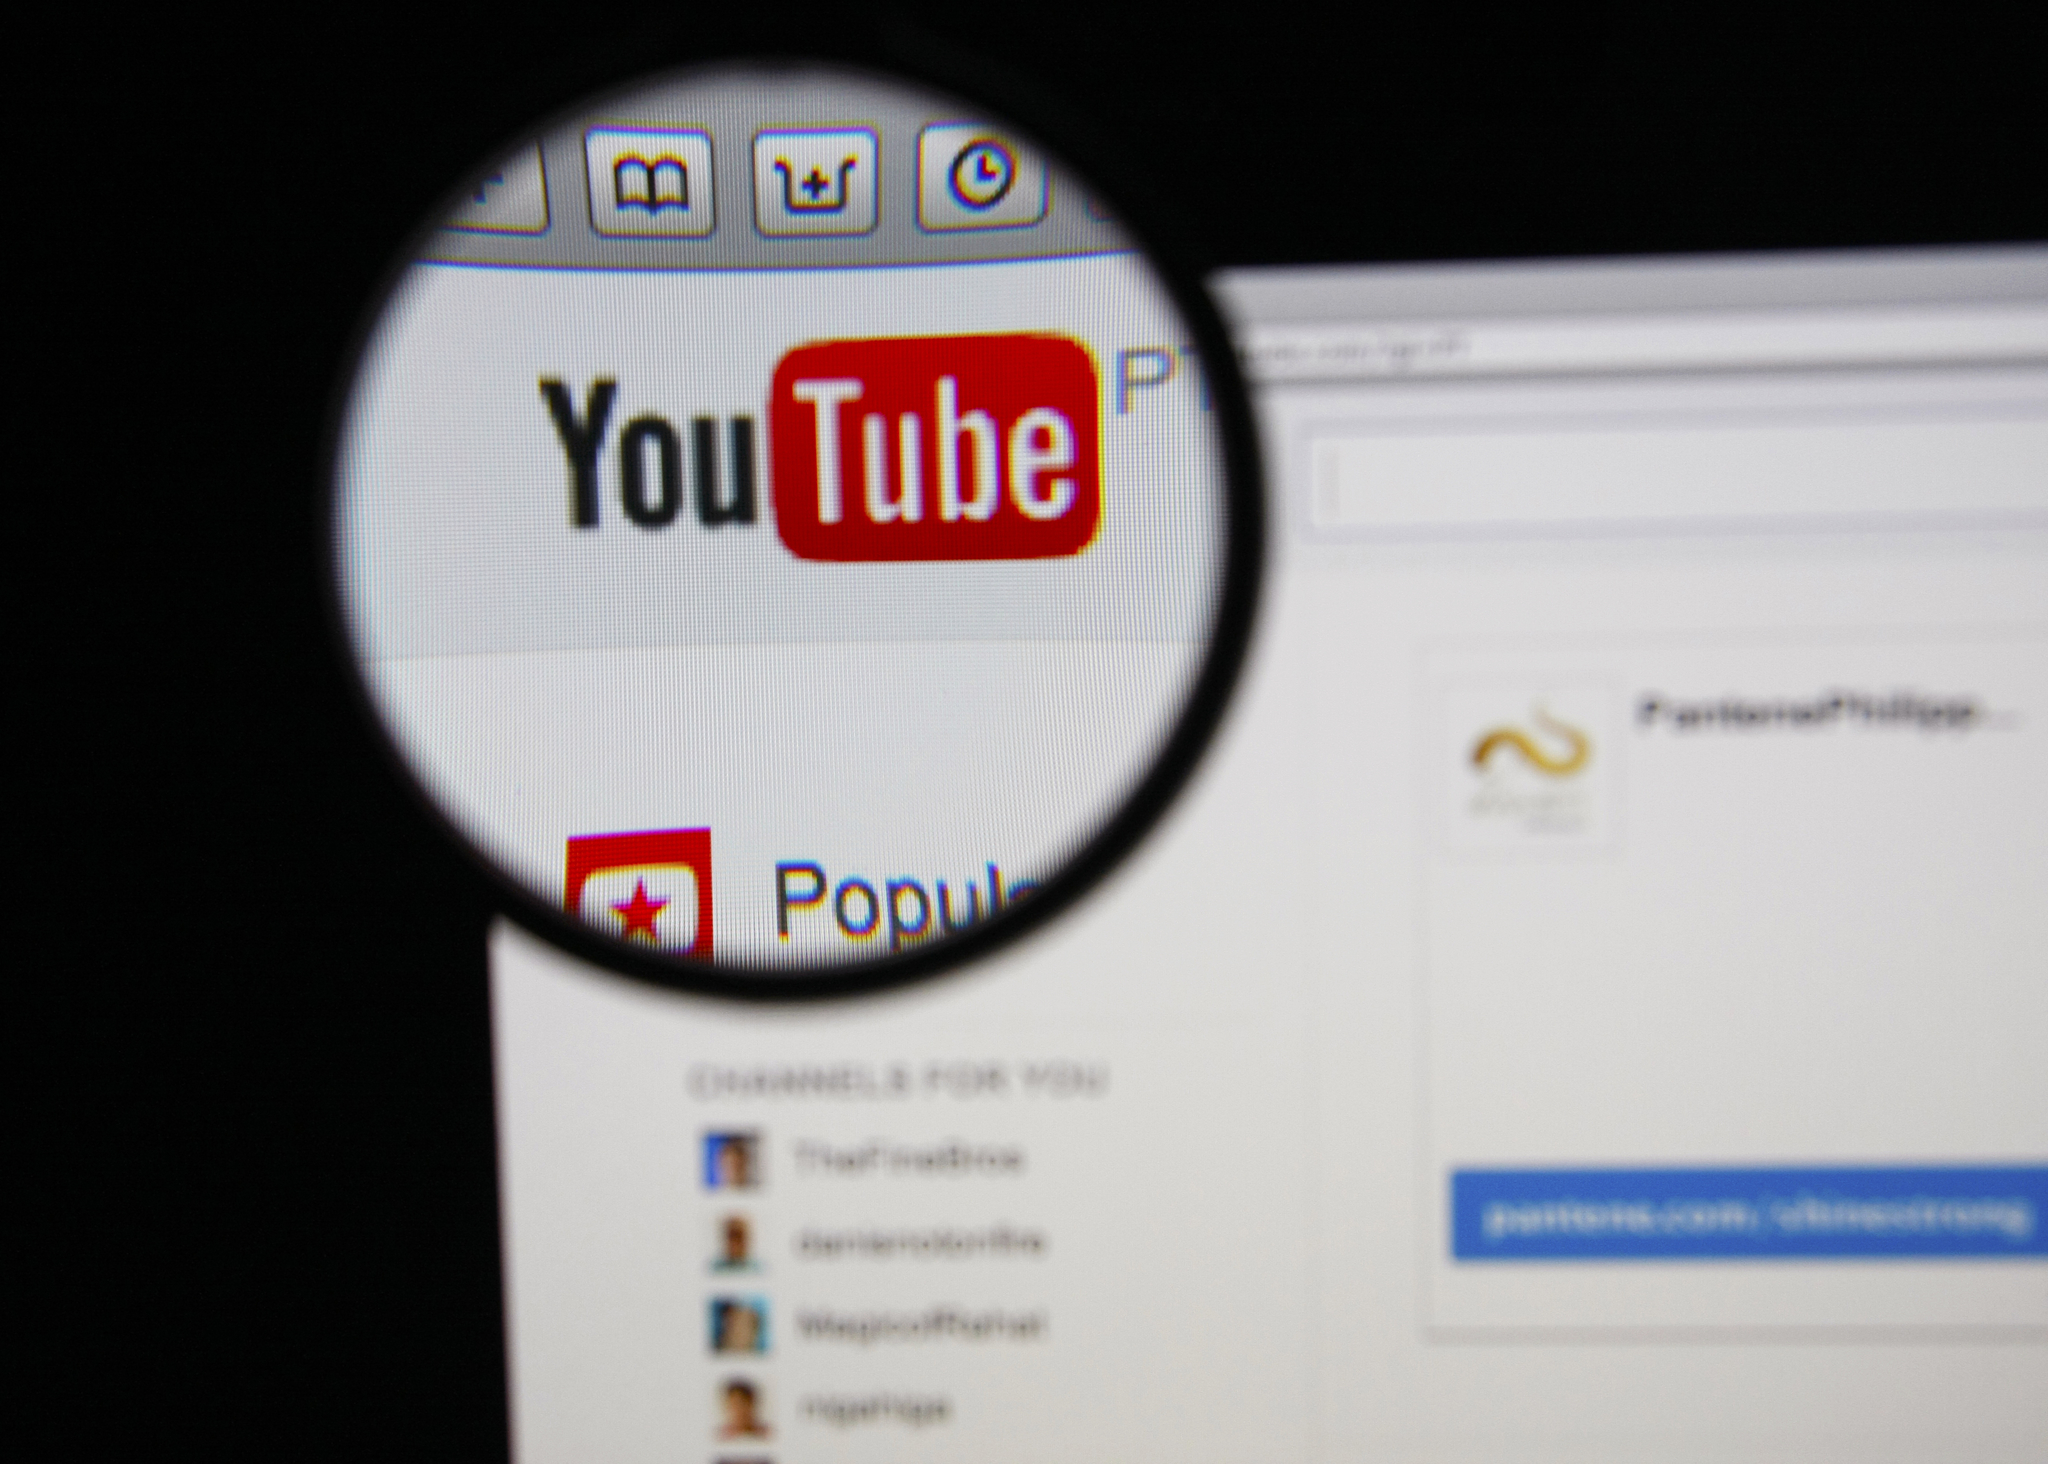 Bildetyveri.no godkjent for YouTube. (Foto: GilbertC, Dreamstime)